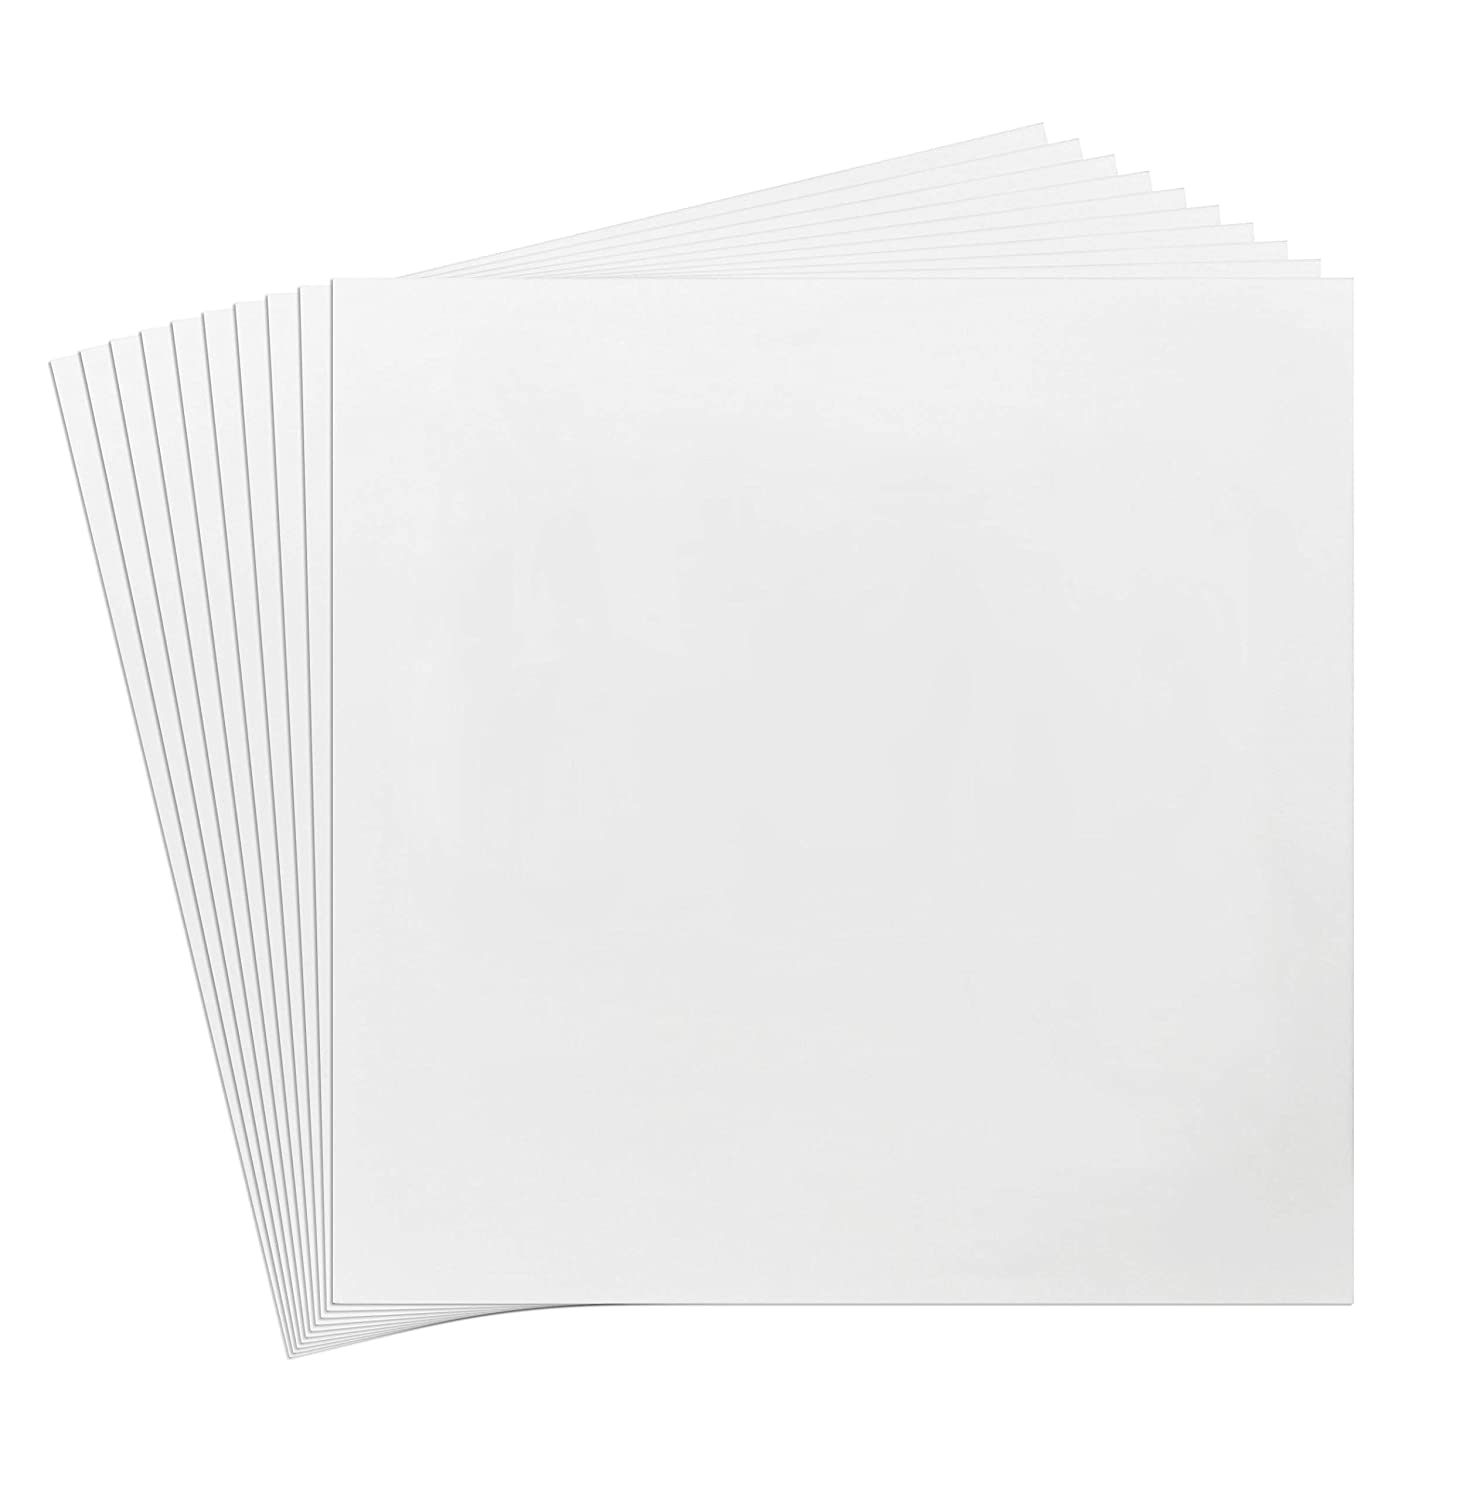 Pack of 10 8x8 White Picture Mats Mattes with White Core Bevel Cut for 4x4 Photo Golden State Art